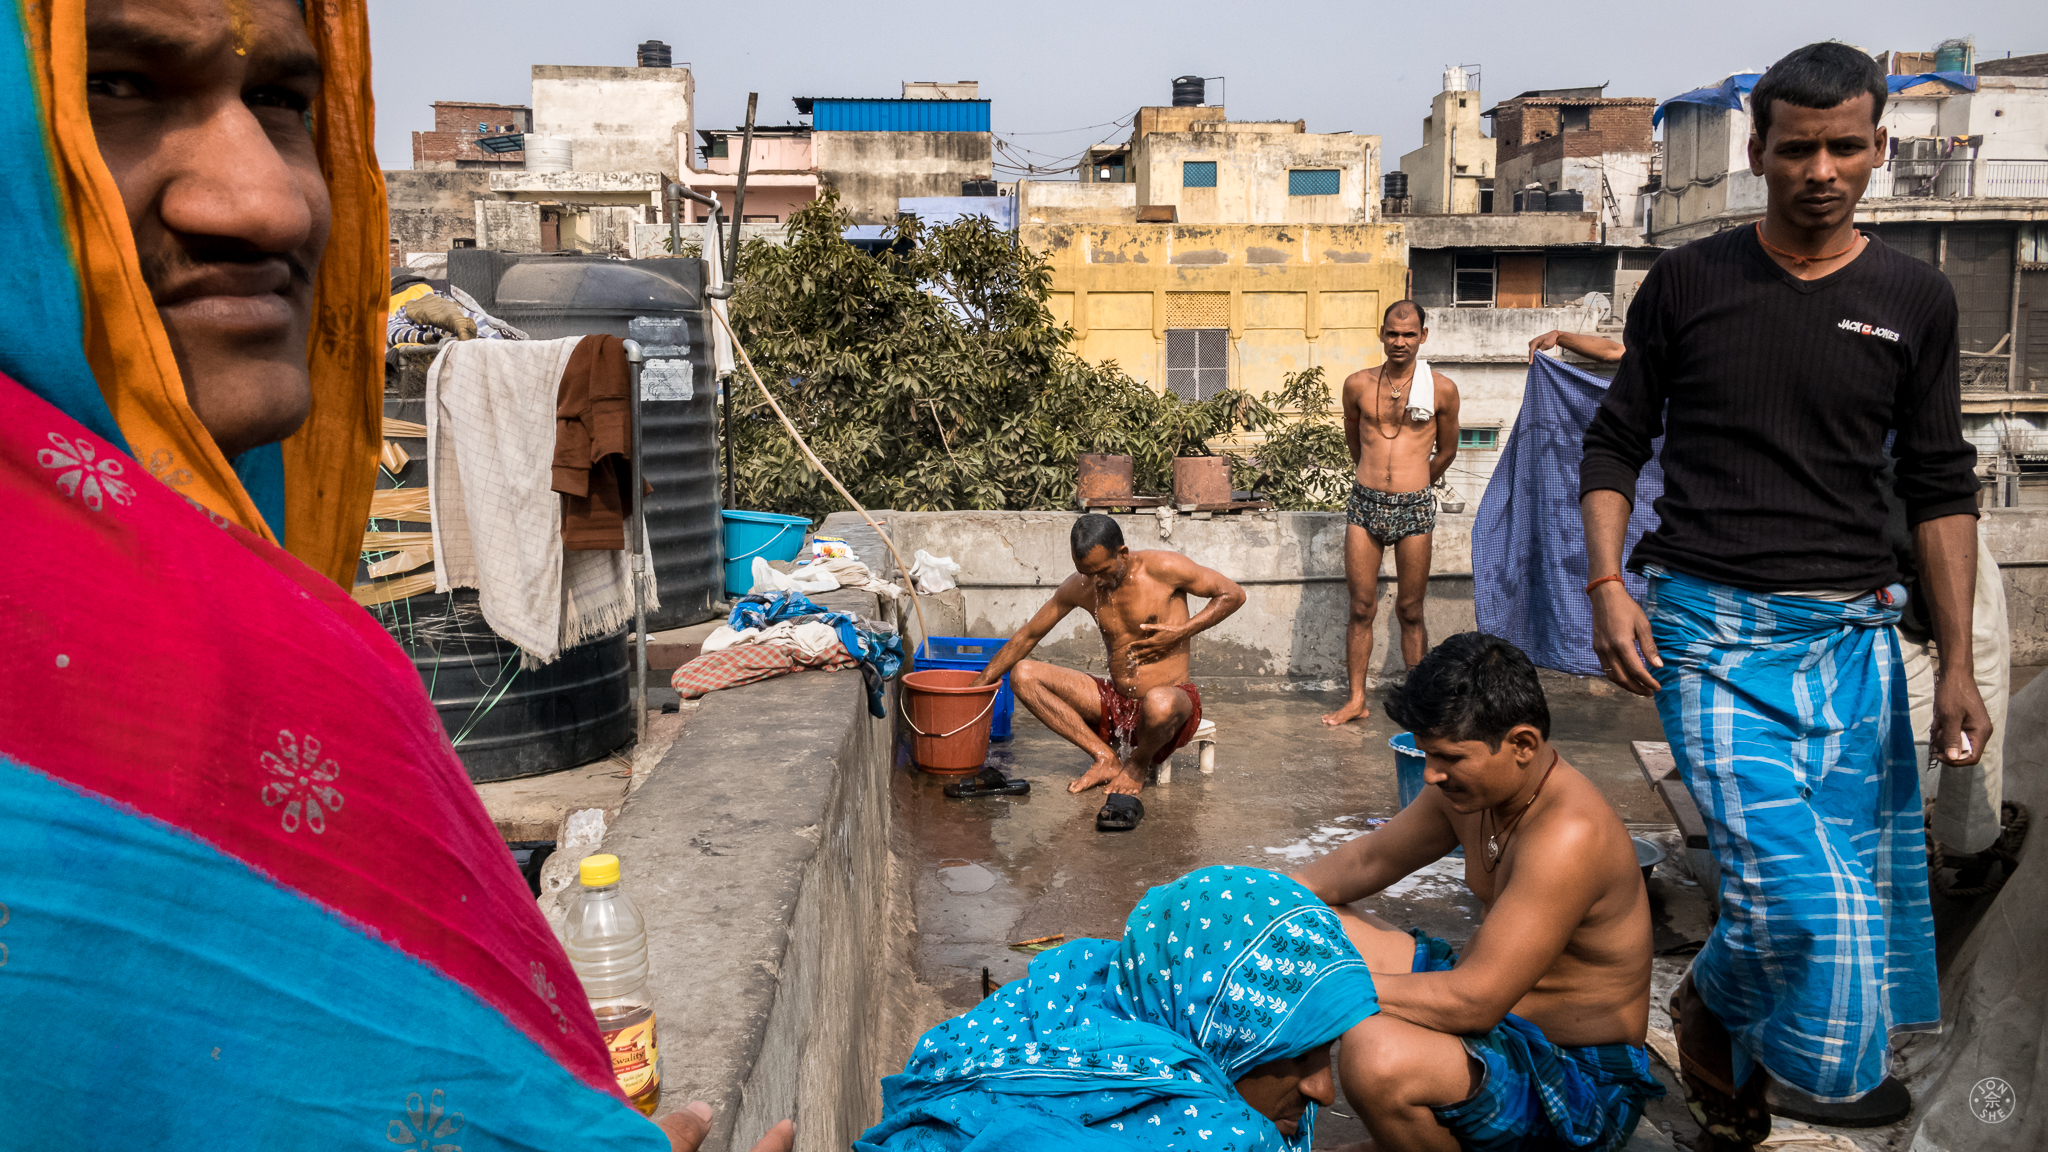 """The Bathroom on the Roof"".  Old Delhi, India. January 2017. © Jon She. Leica M10, Leica Summilux 28mm f/1.4 ASPH."